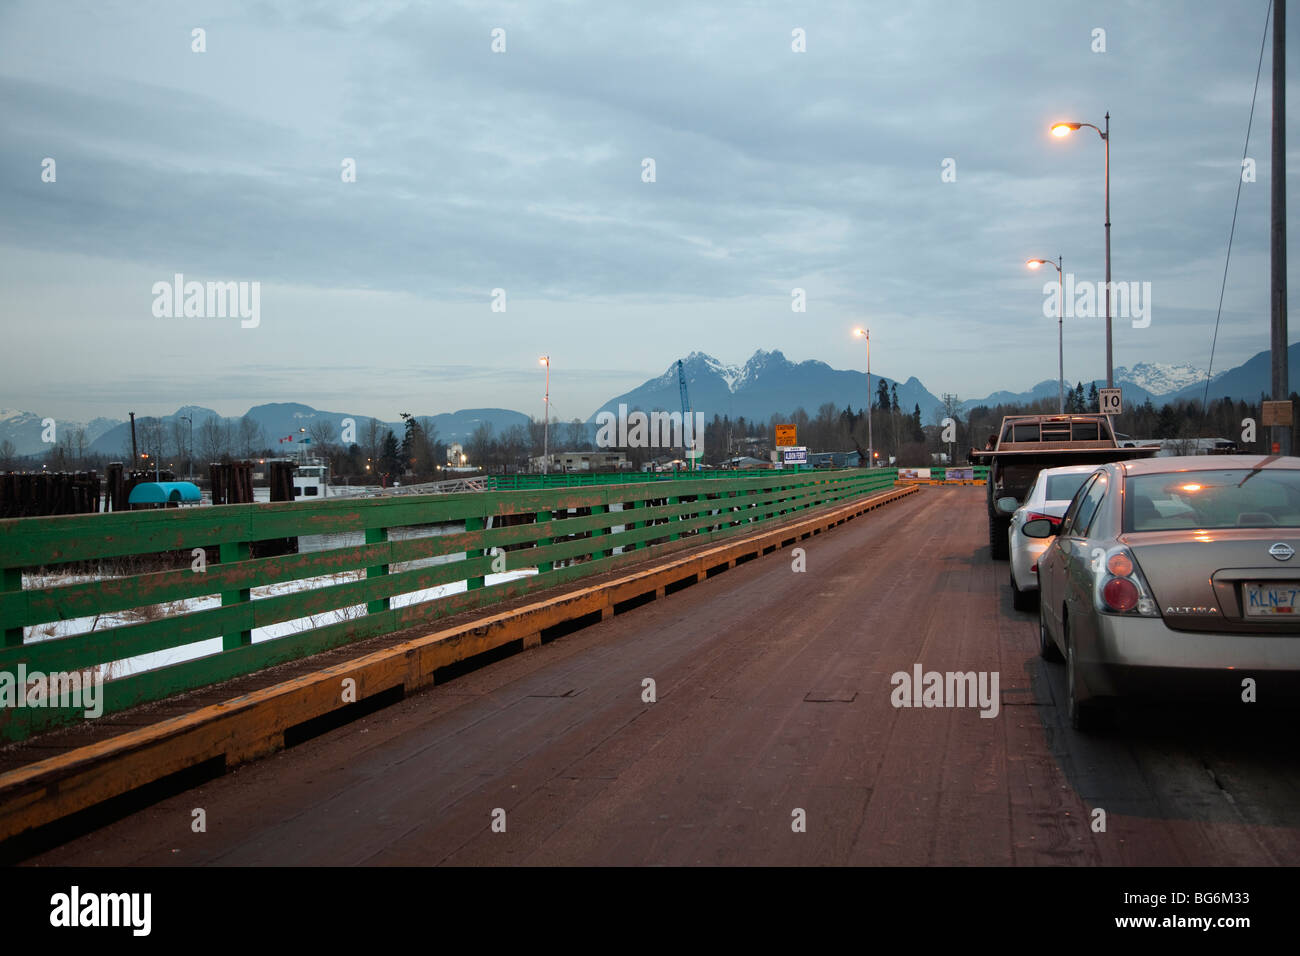 A queue of cars waiting for the Albion Ferry, Fraser River, Fort Langley, BC, Canada - Stock Image